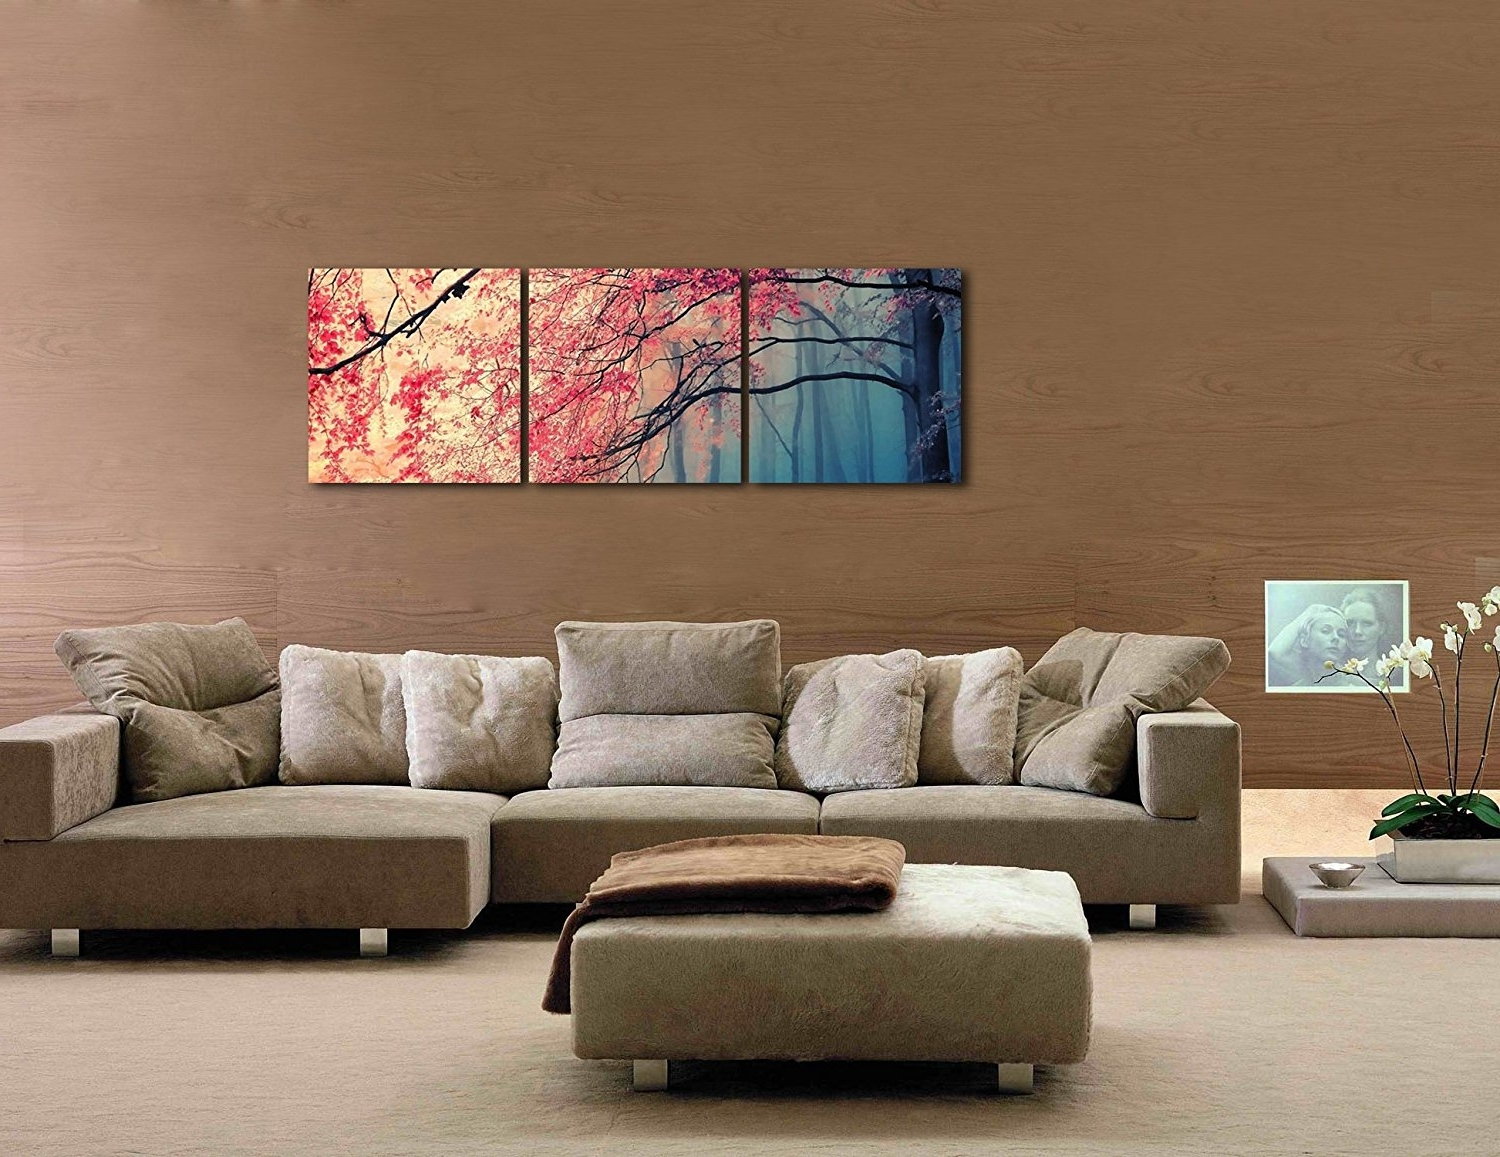 Amazon: Gardenia Art – Red Maples Canvas Prints Wall Art With Regard To Famous Living Room Canvas Wall Art (Gallery 4 of 15)